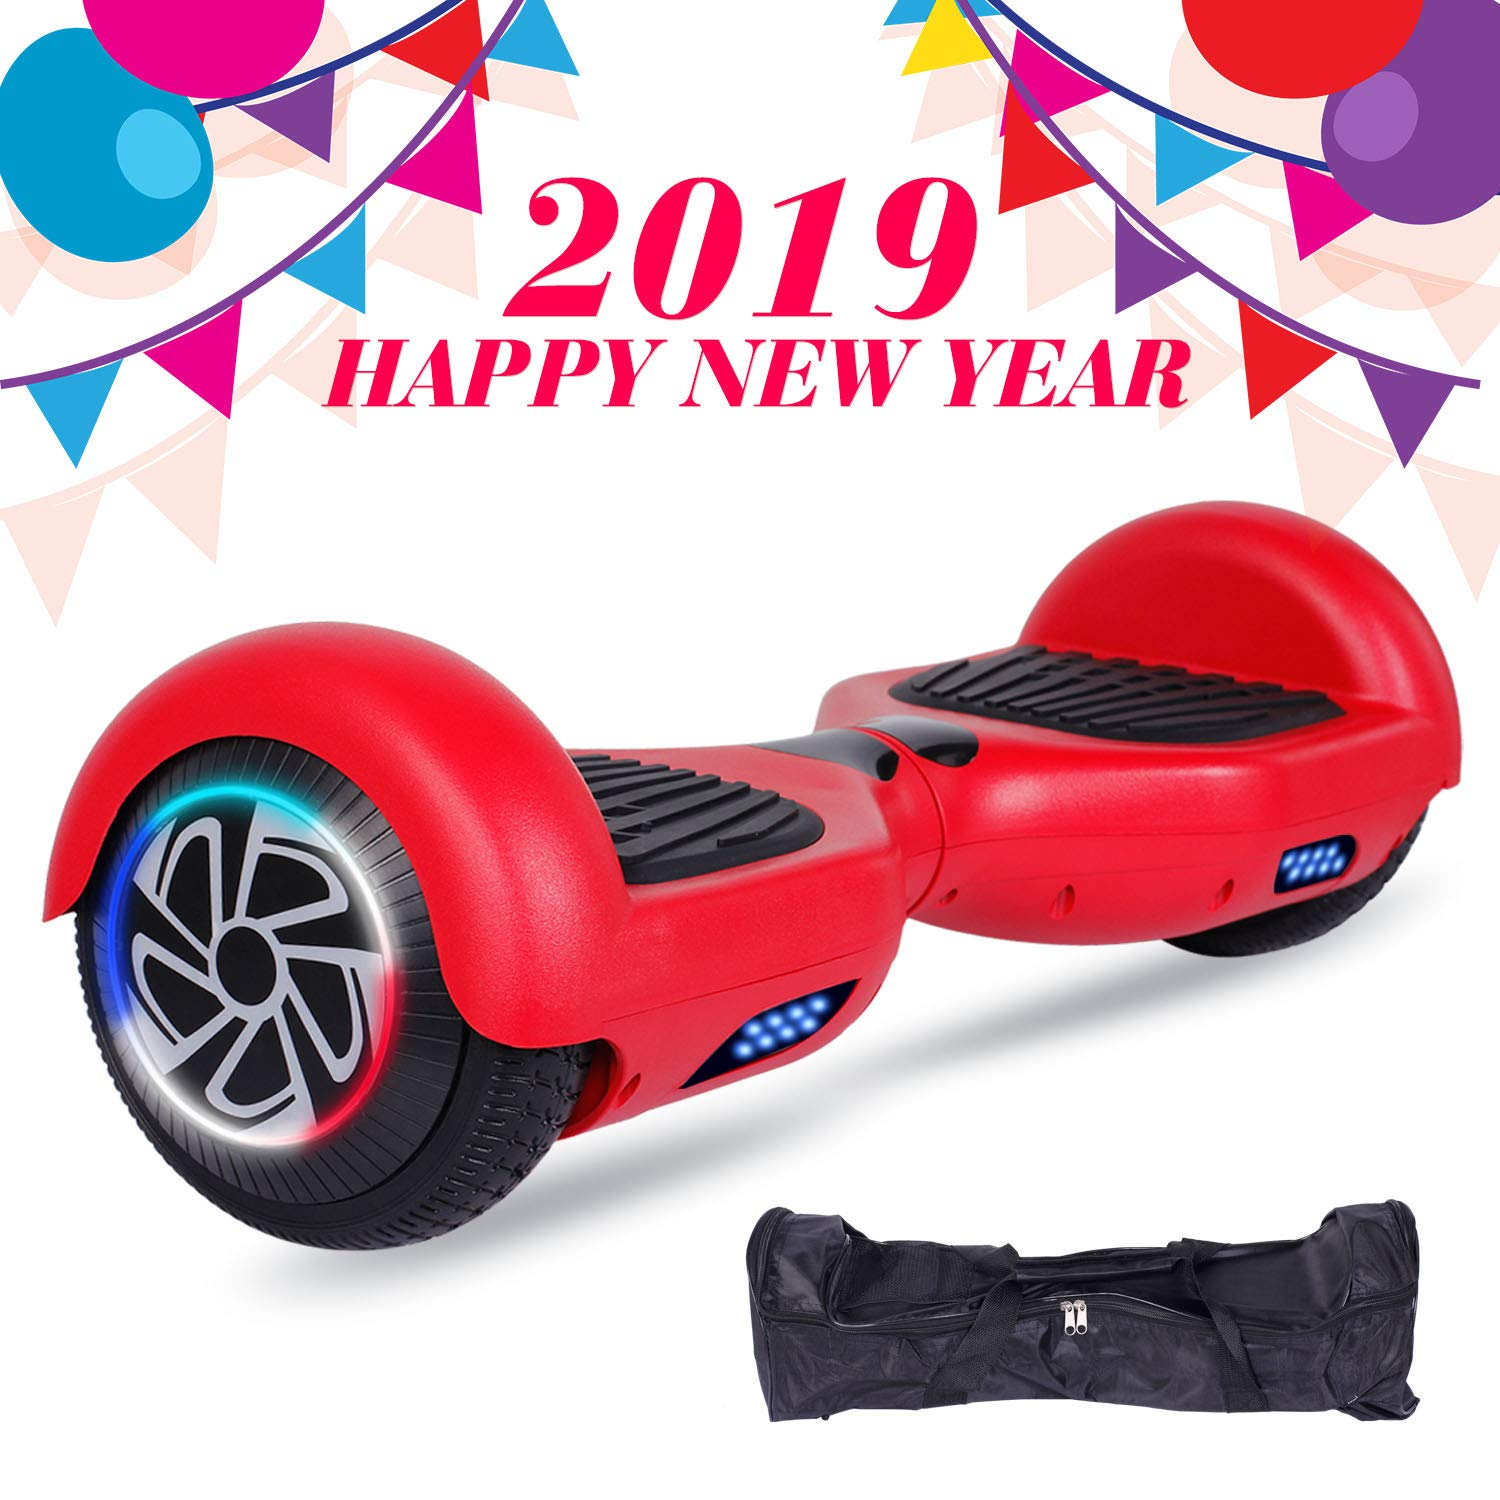 SISIGAD Hoverboard Self Balancing Scooter 6.5'' Two-Wheel Self Balancing Hoverboard with LED Lights Electric Scooter for Adult Kids Gift UL 2272 Certified - Red by SISIGAD (Image #1)